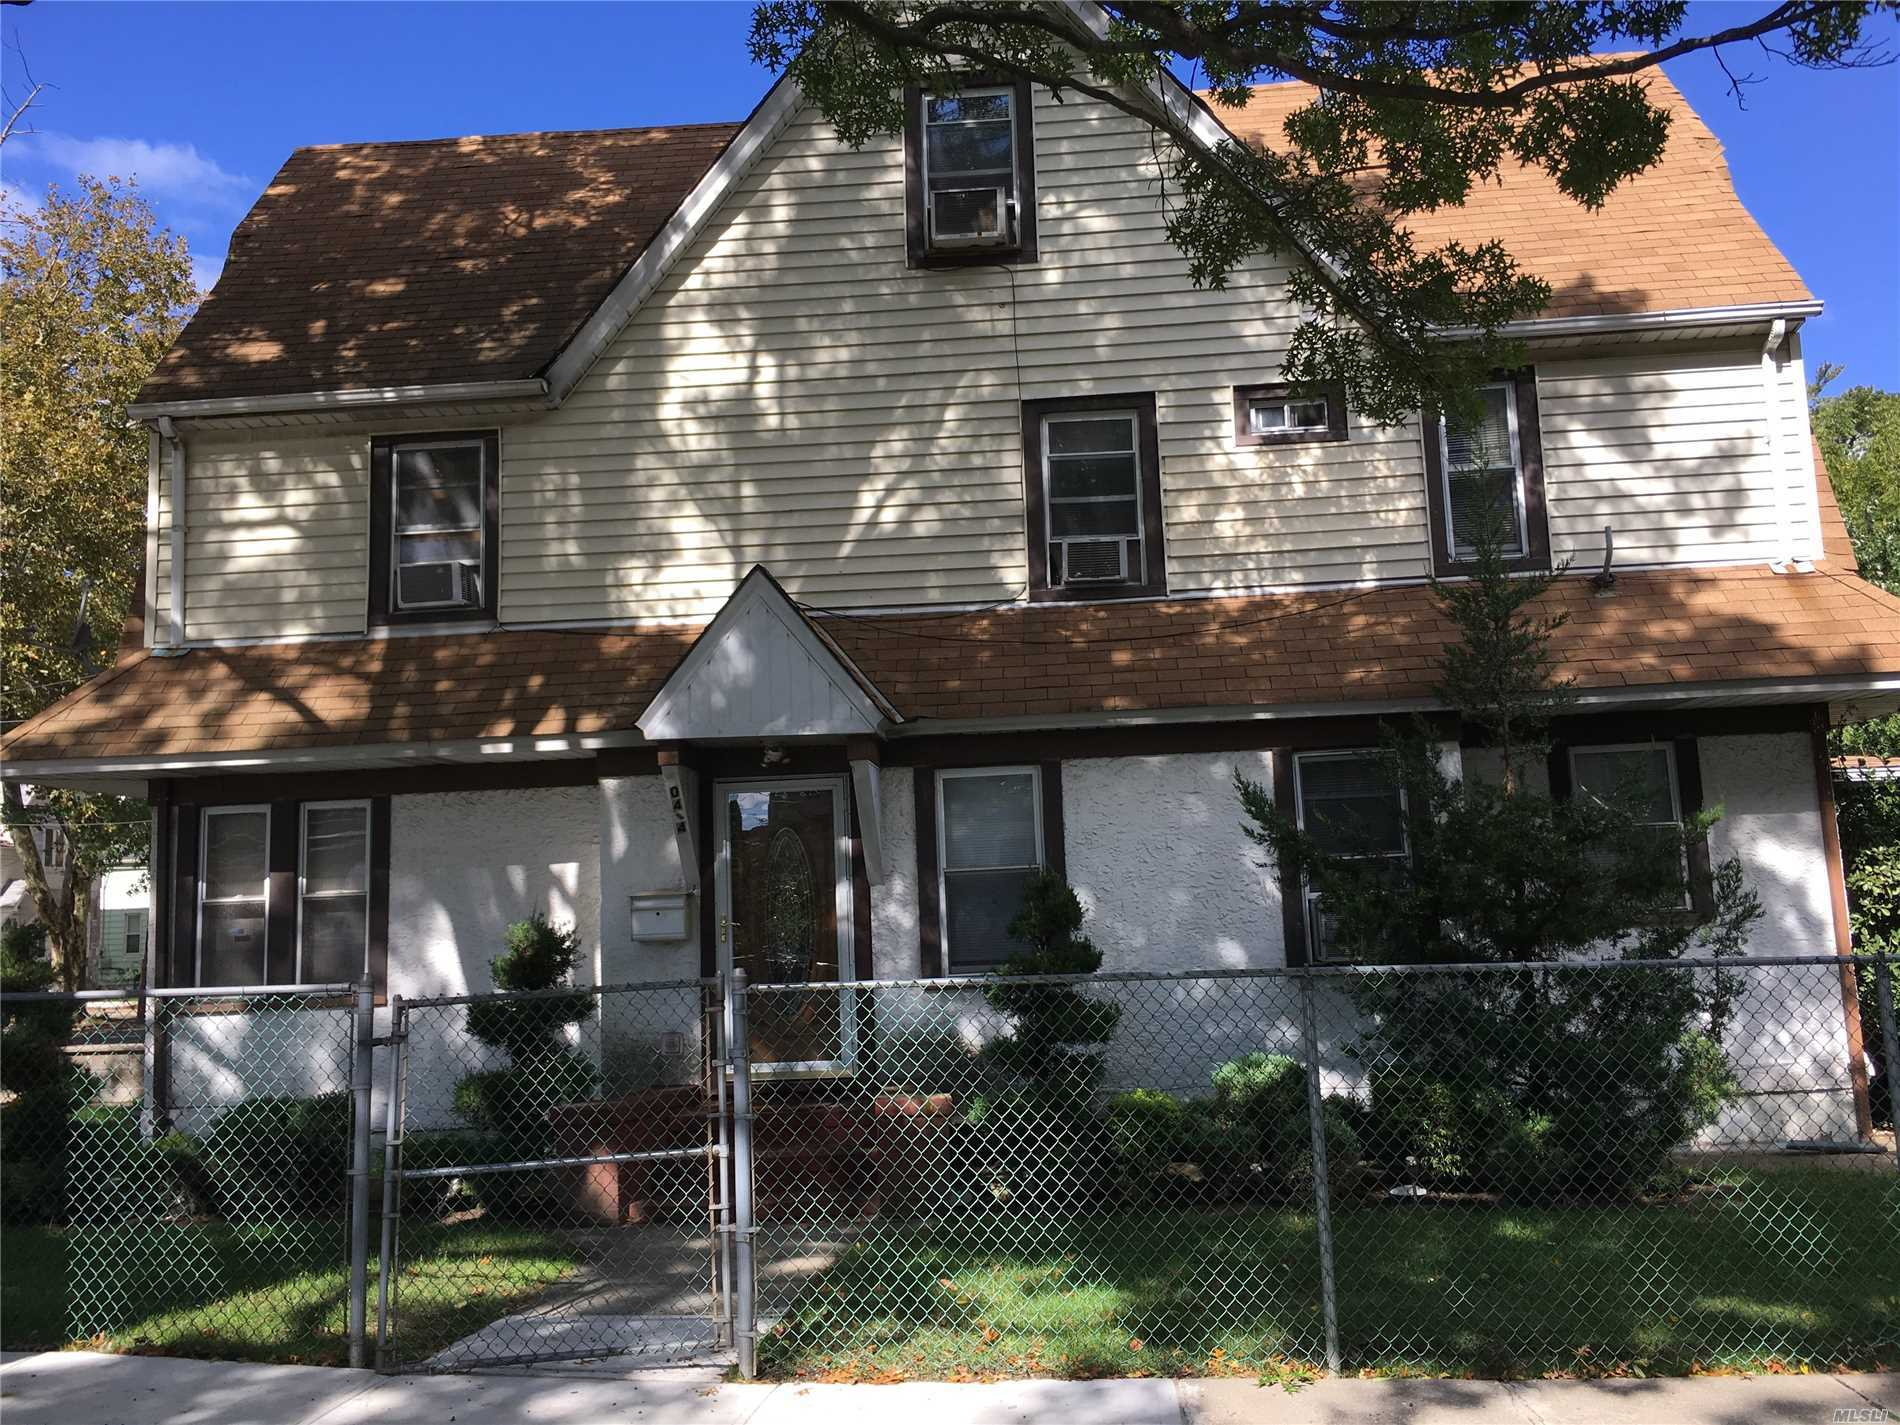 Mrs Clean Live Here, This Charming Colonial Has It All, Large Liv. Room, Fdr, Updated Kitchen With New Appliances, 4 Lg Bed Rooms, 2.5 Baths 2 Car Garage Finish Bsmt.Near To Call